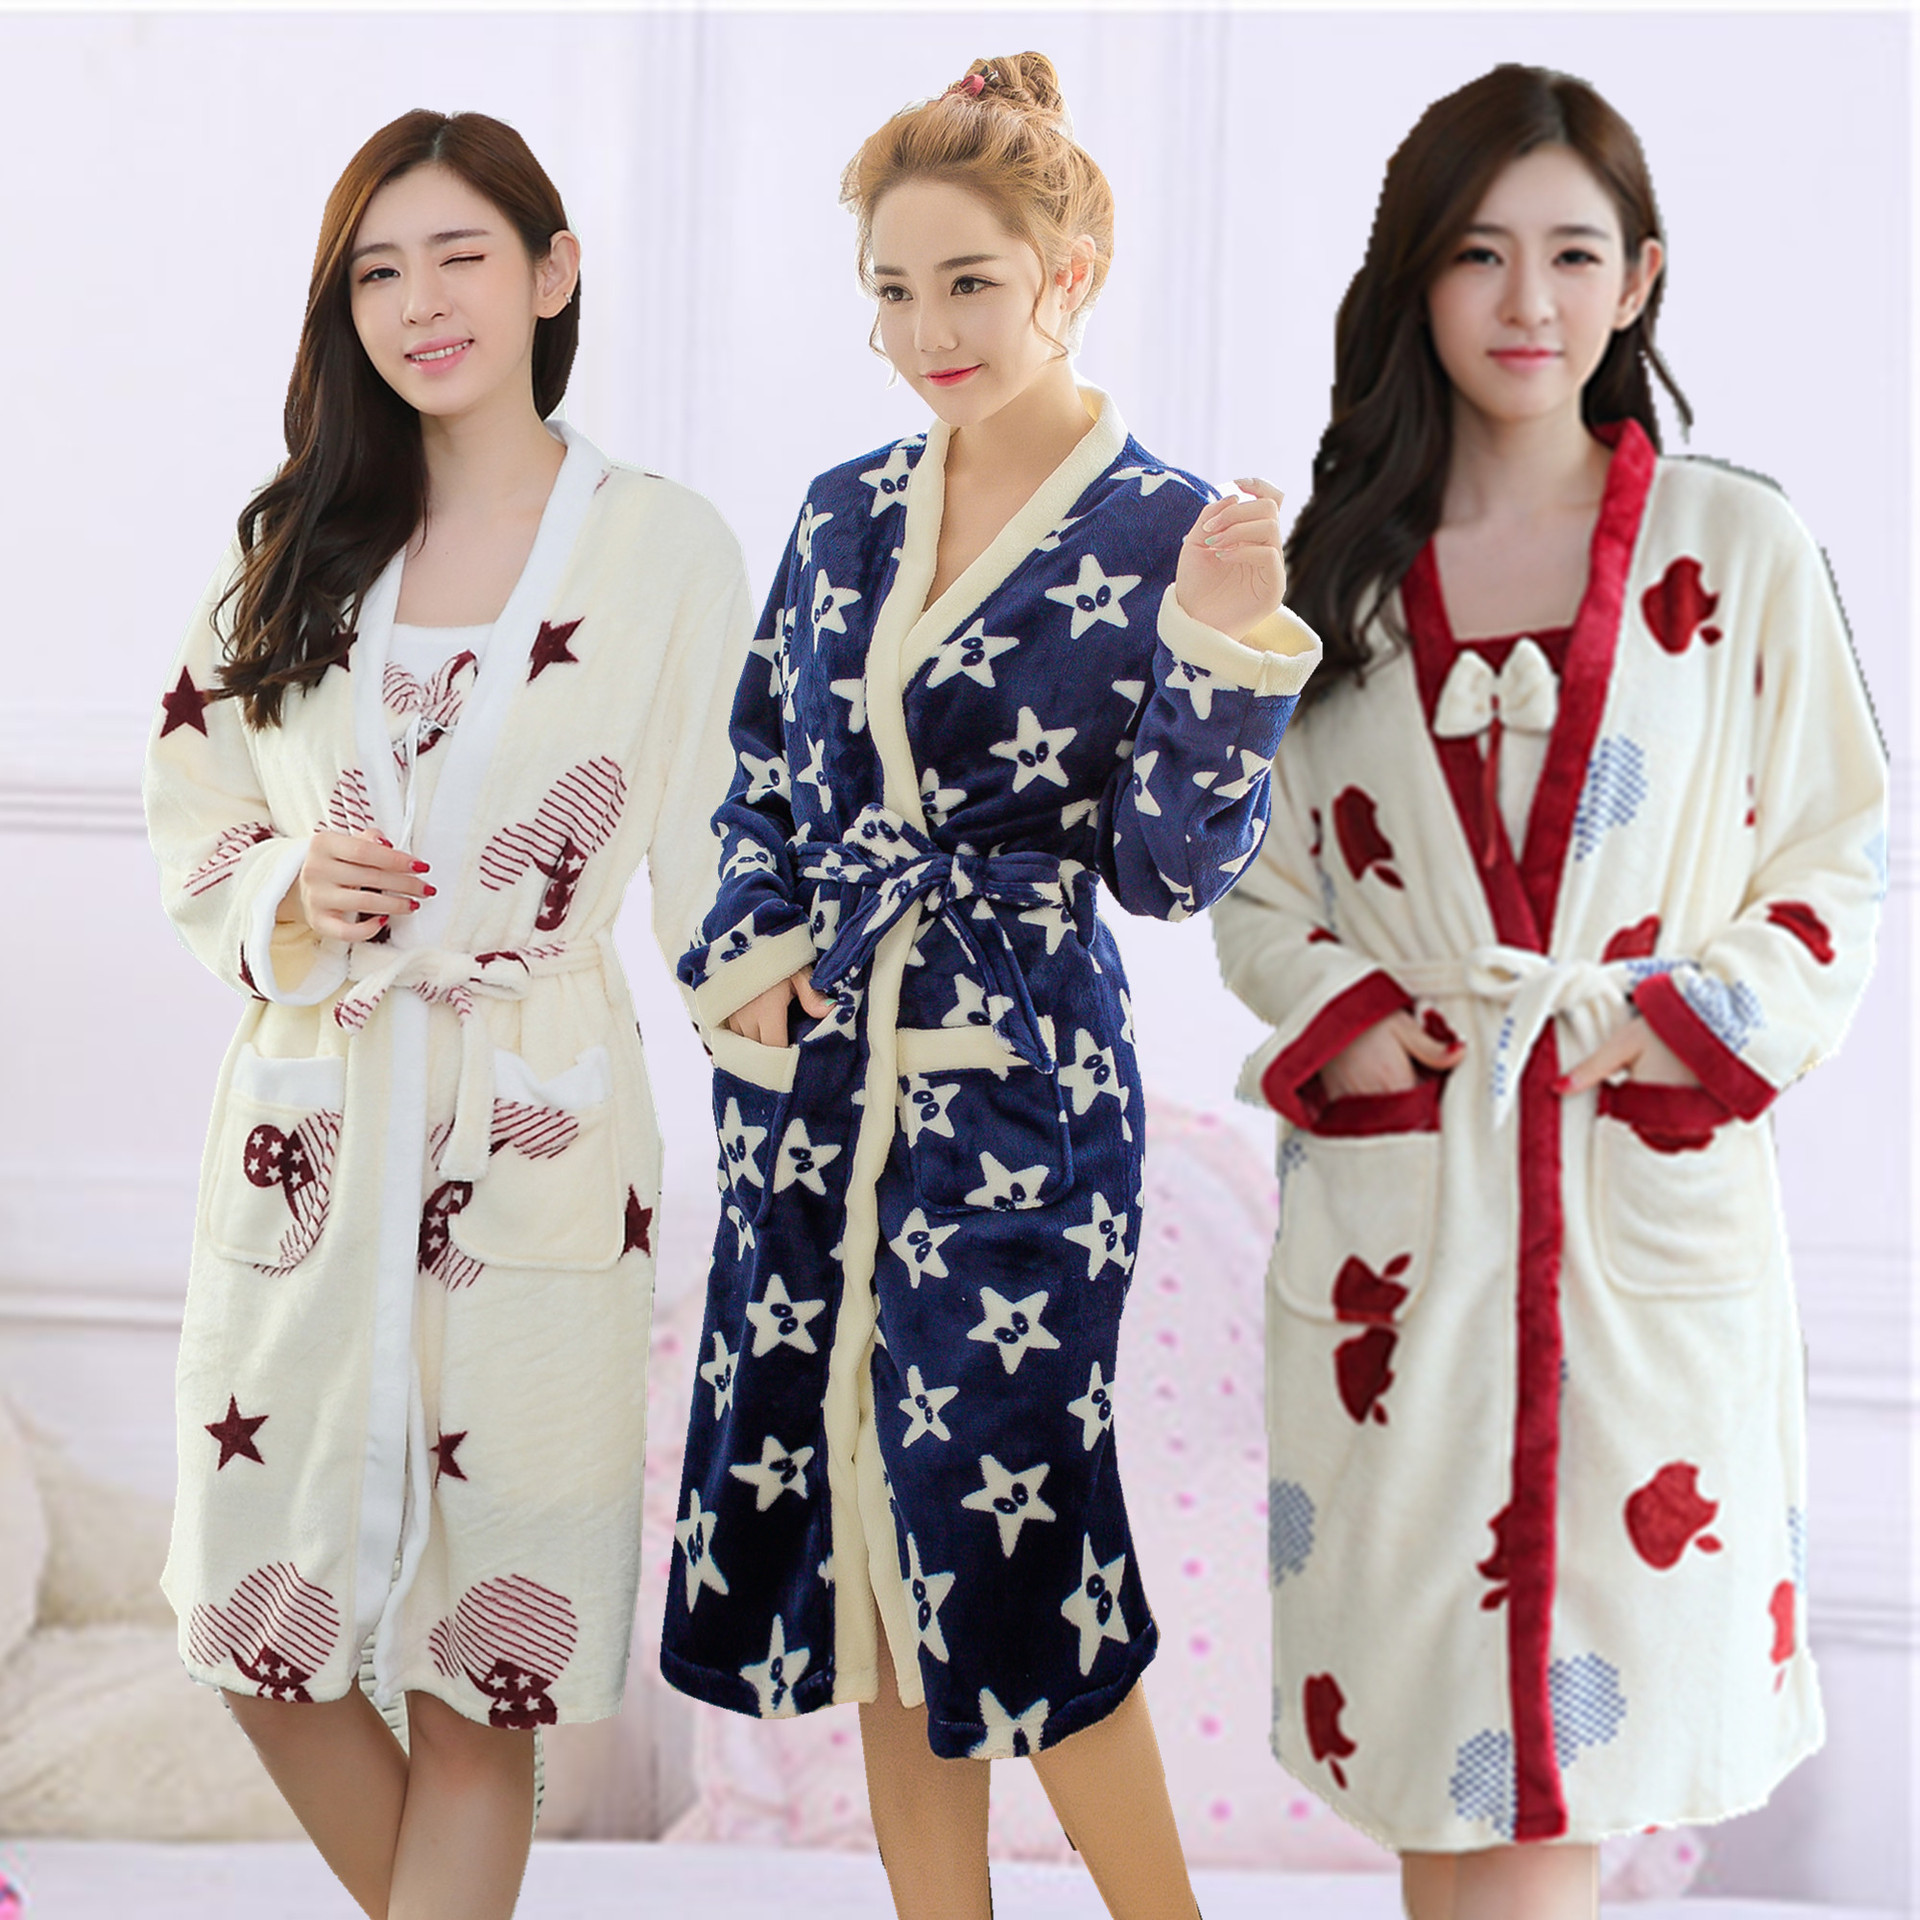 New autum/winter women's sleepwear flannel nightgown home wear maternity sleepwear and tanks pregnancy nightwear pajamas 16906